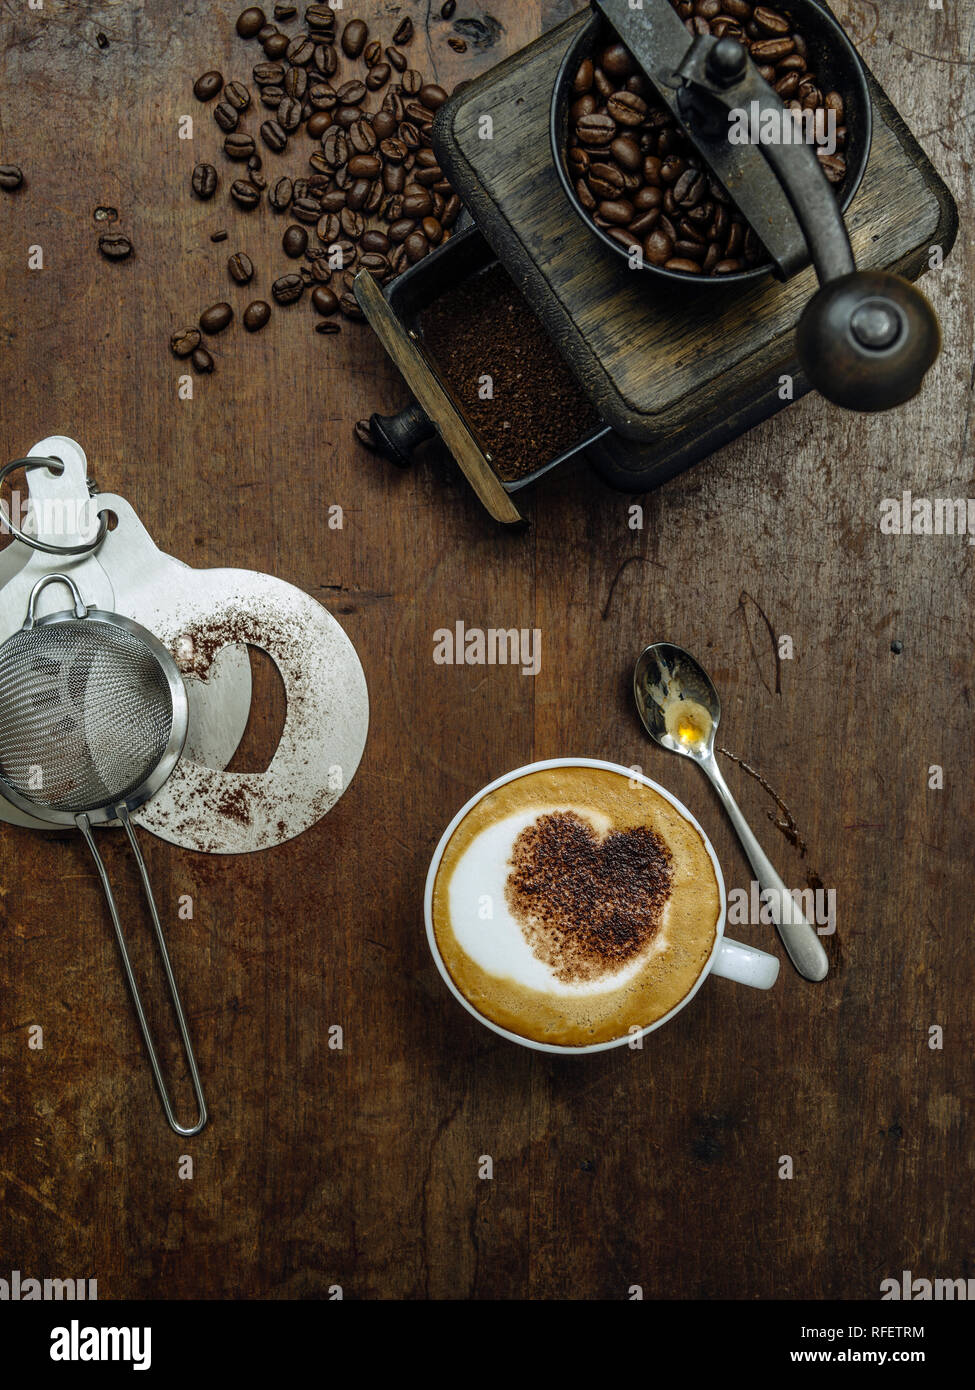 Photo of a messy rustic wooden table of coffee beans, grinder and a cup of coffee with heart-shaped chocolate sprinkle. - Stock Image